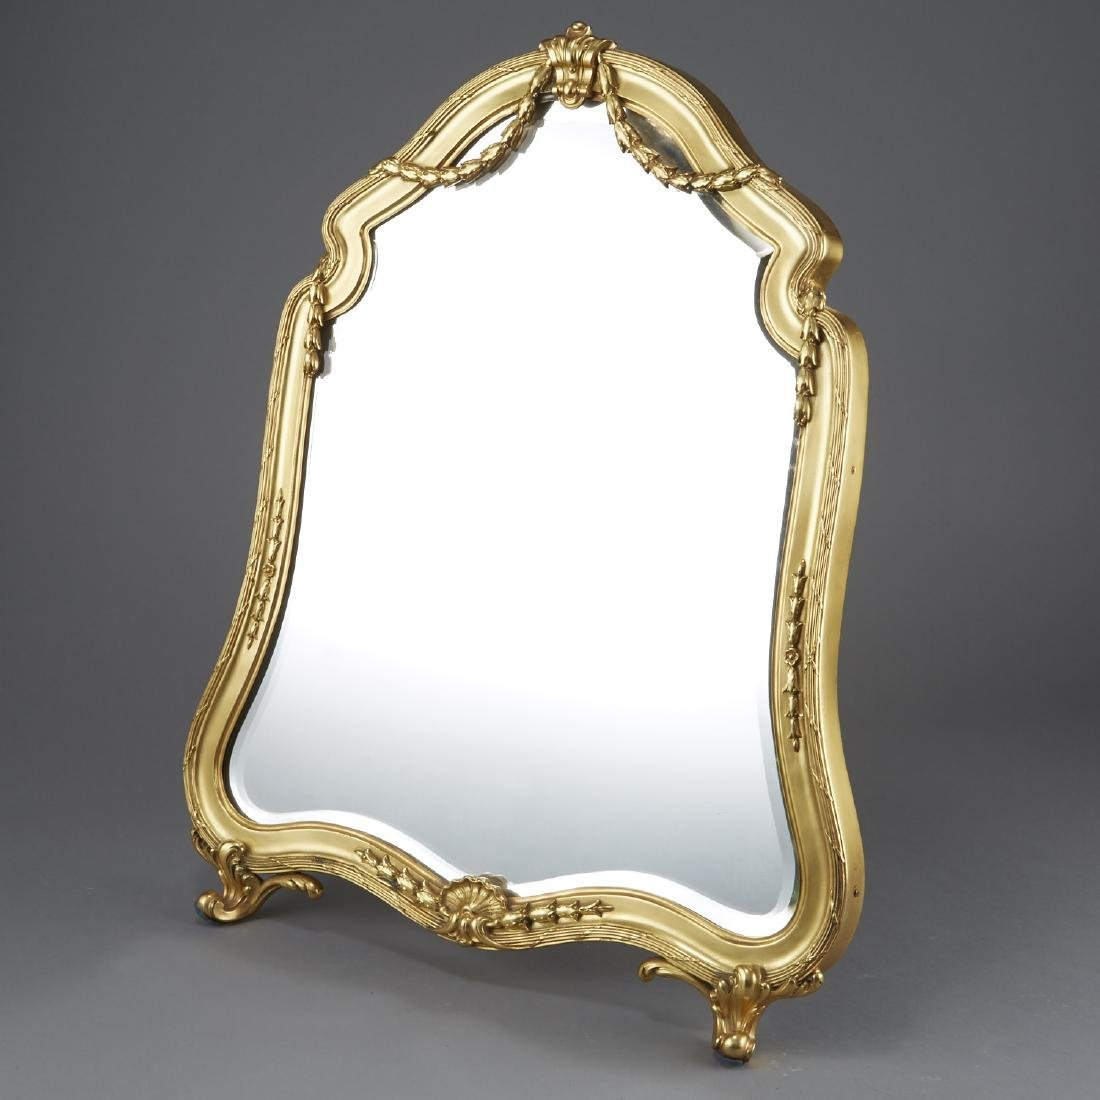 Aucoc of Paris Silver Gilt Table Mirror - 2